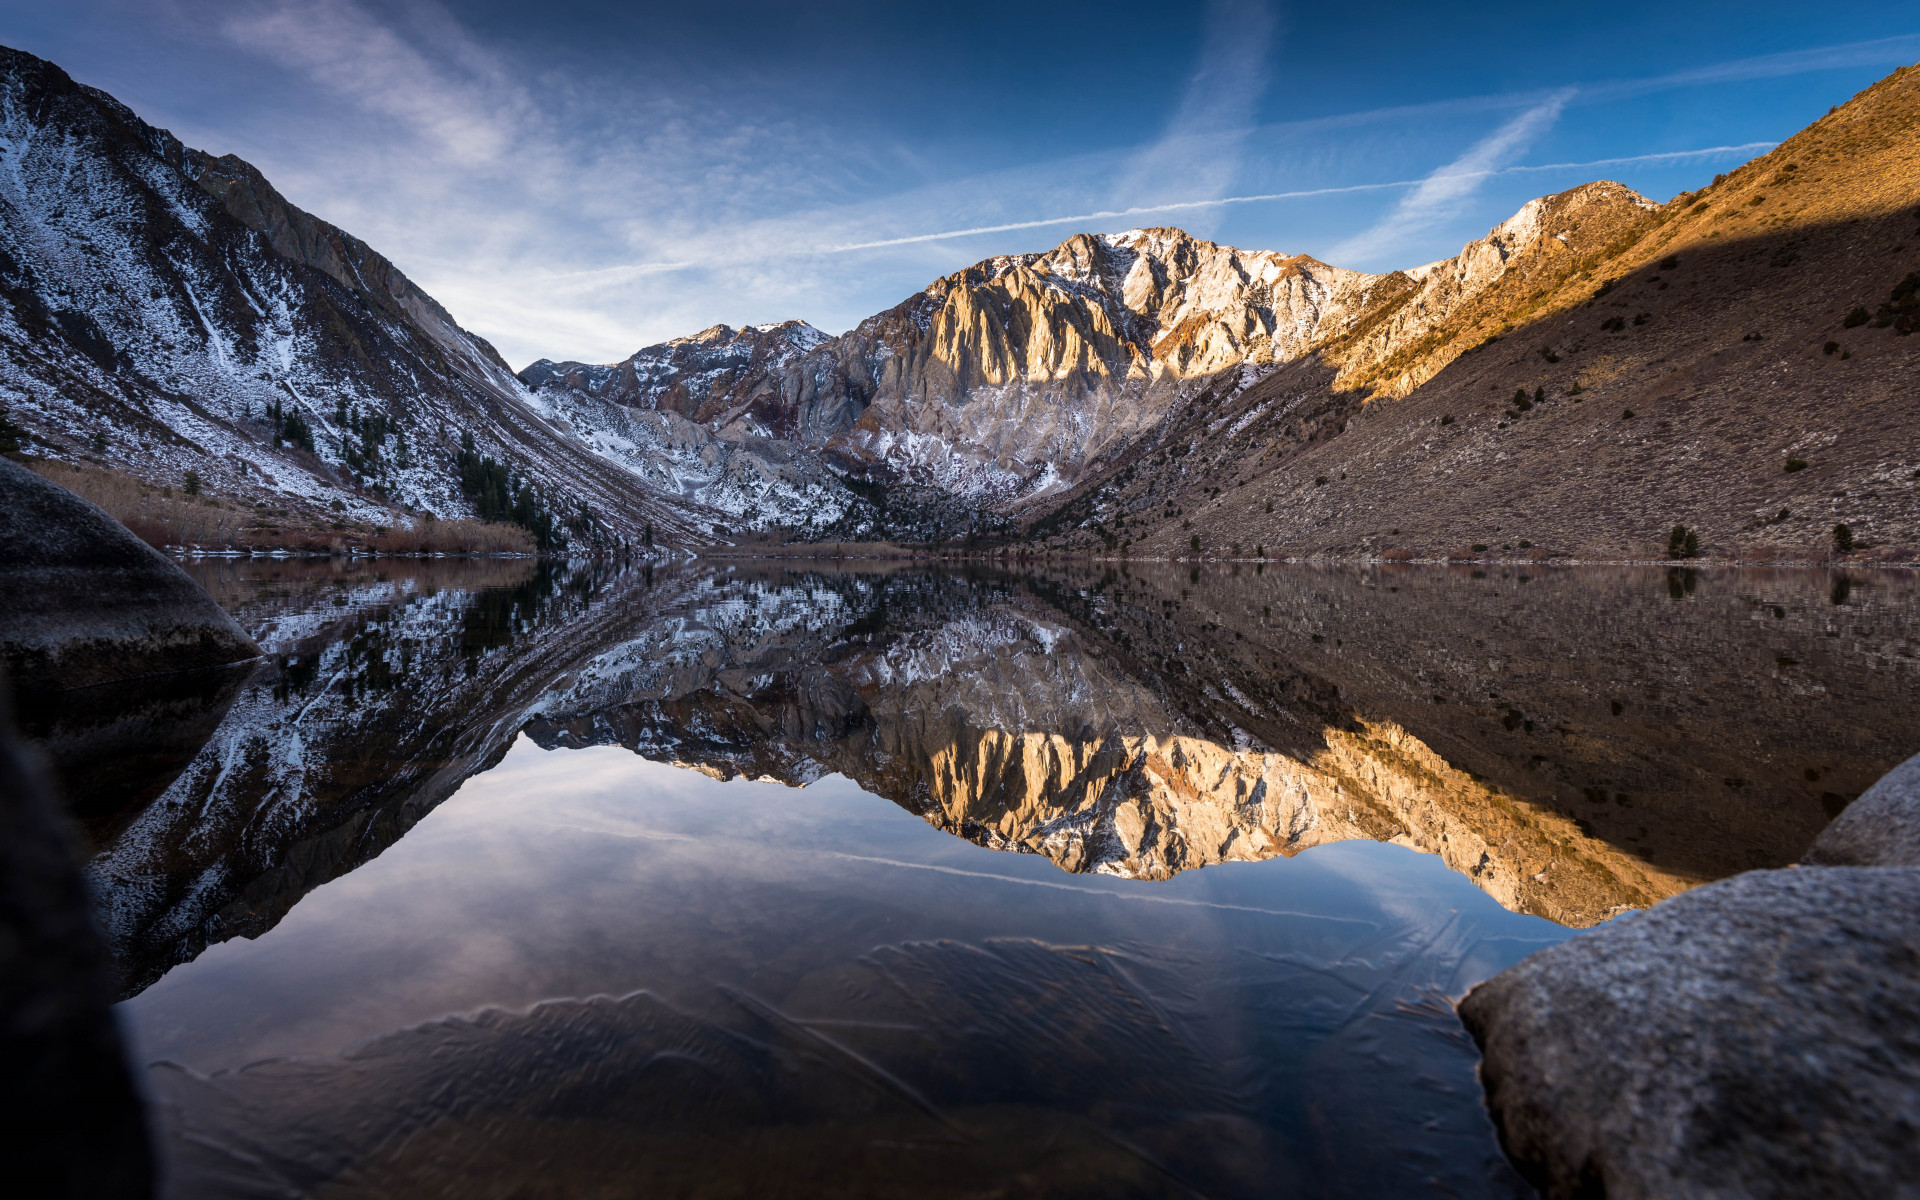 Convict lake began to freeze | 1920x1200 wallpaper